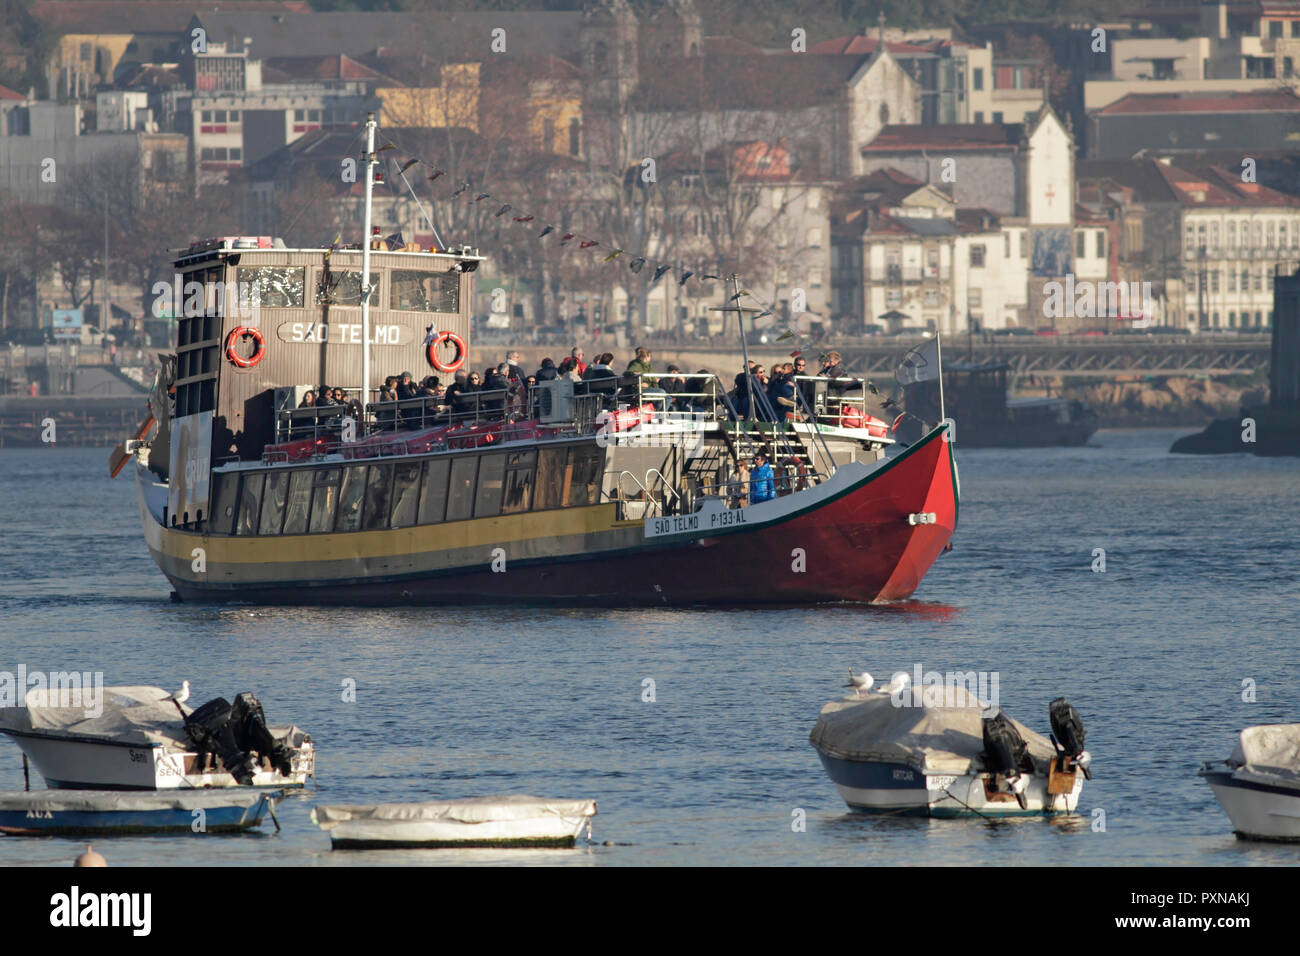 Porto, Portugal: December 5, 2018: Arrival of tourist ship after a cruise on the beautiful Douro River. Stock Photo